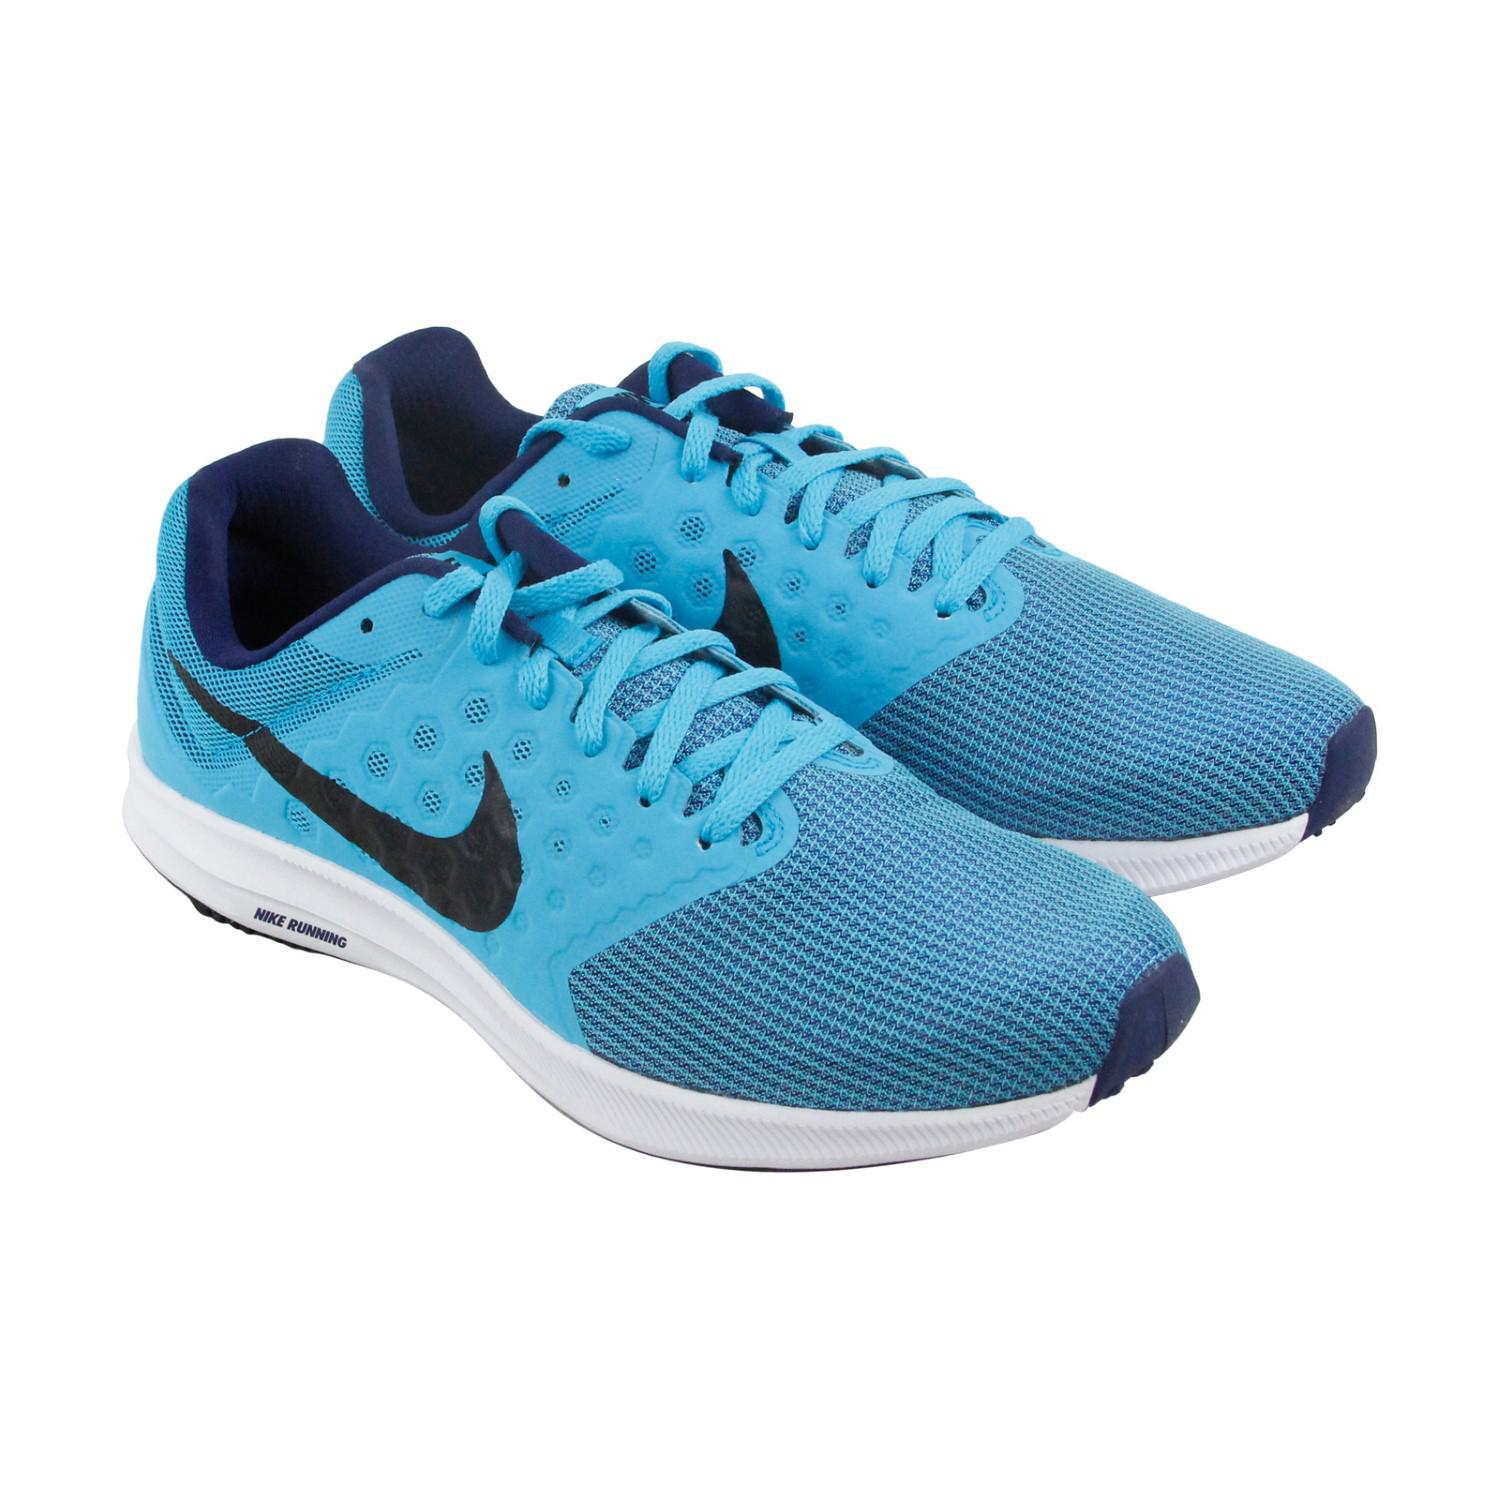 d62e7be5f234 Lyst - Nike Downshifter 7 Black Athletic Running Shoes in Blue for Men